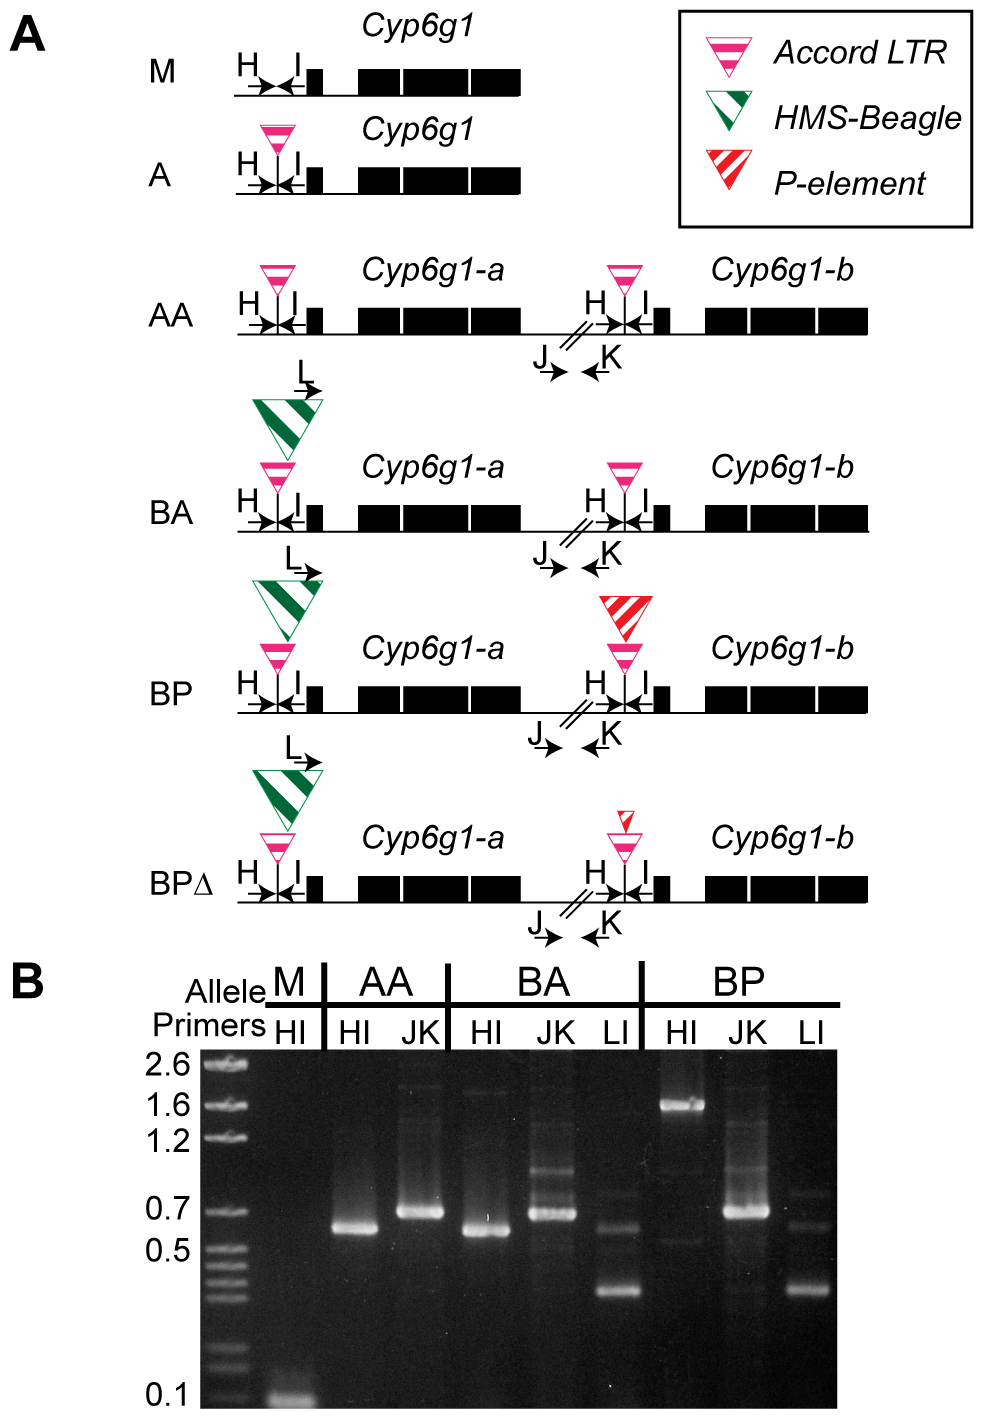 The six alleles of <i>Cyp6g1</i>.